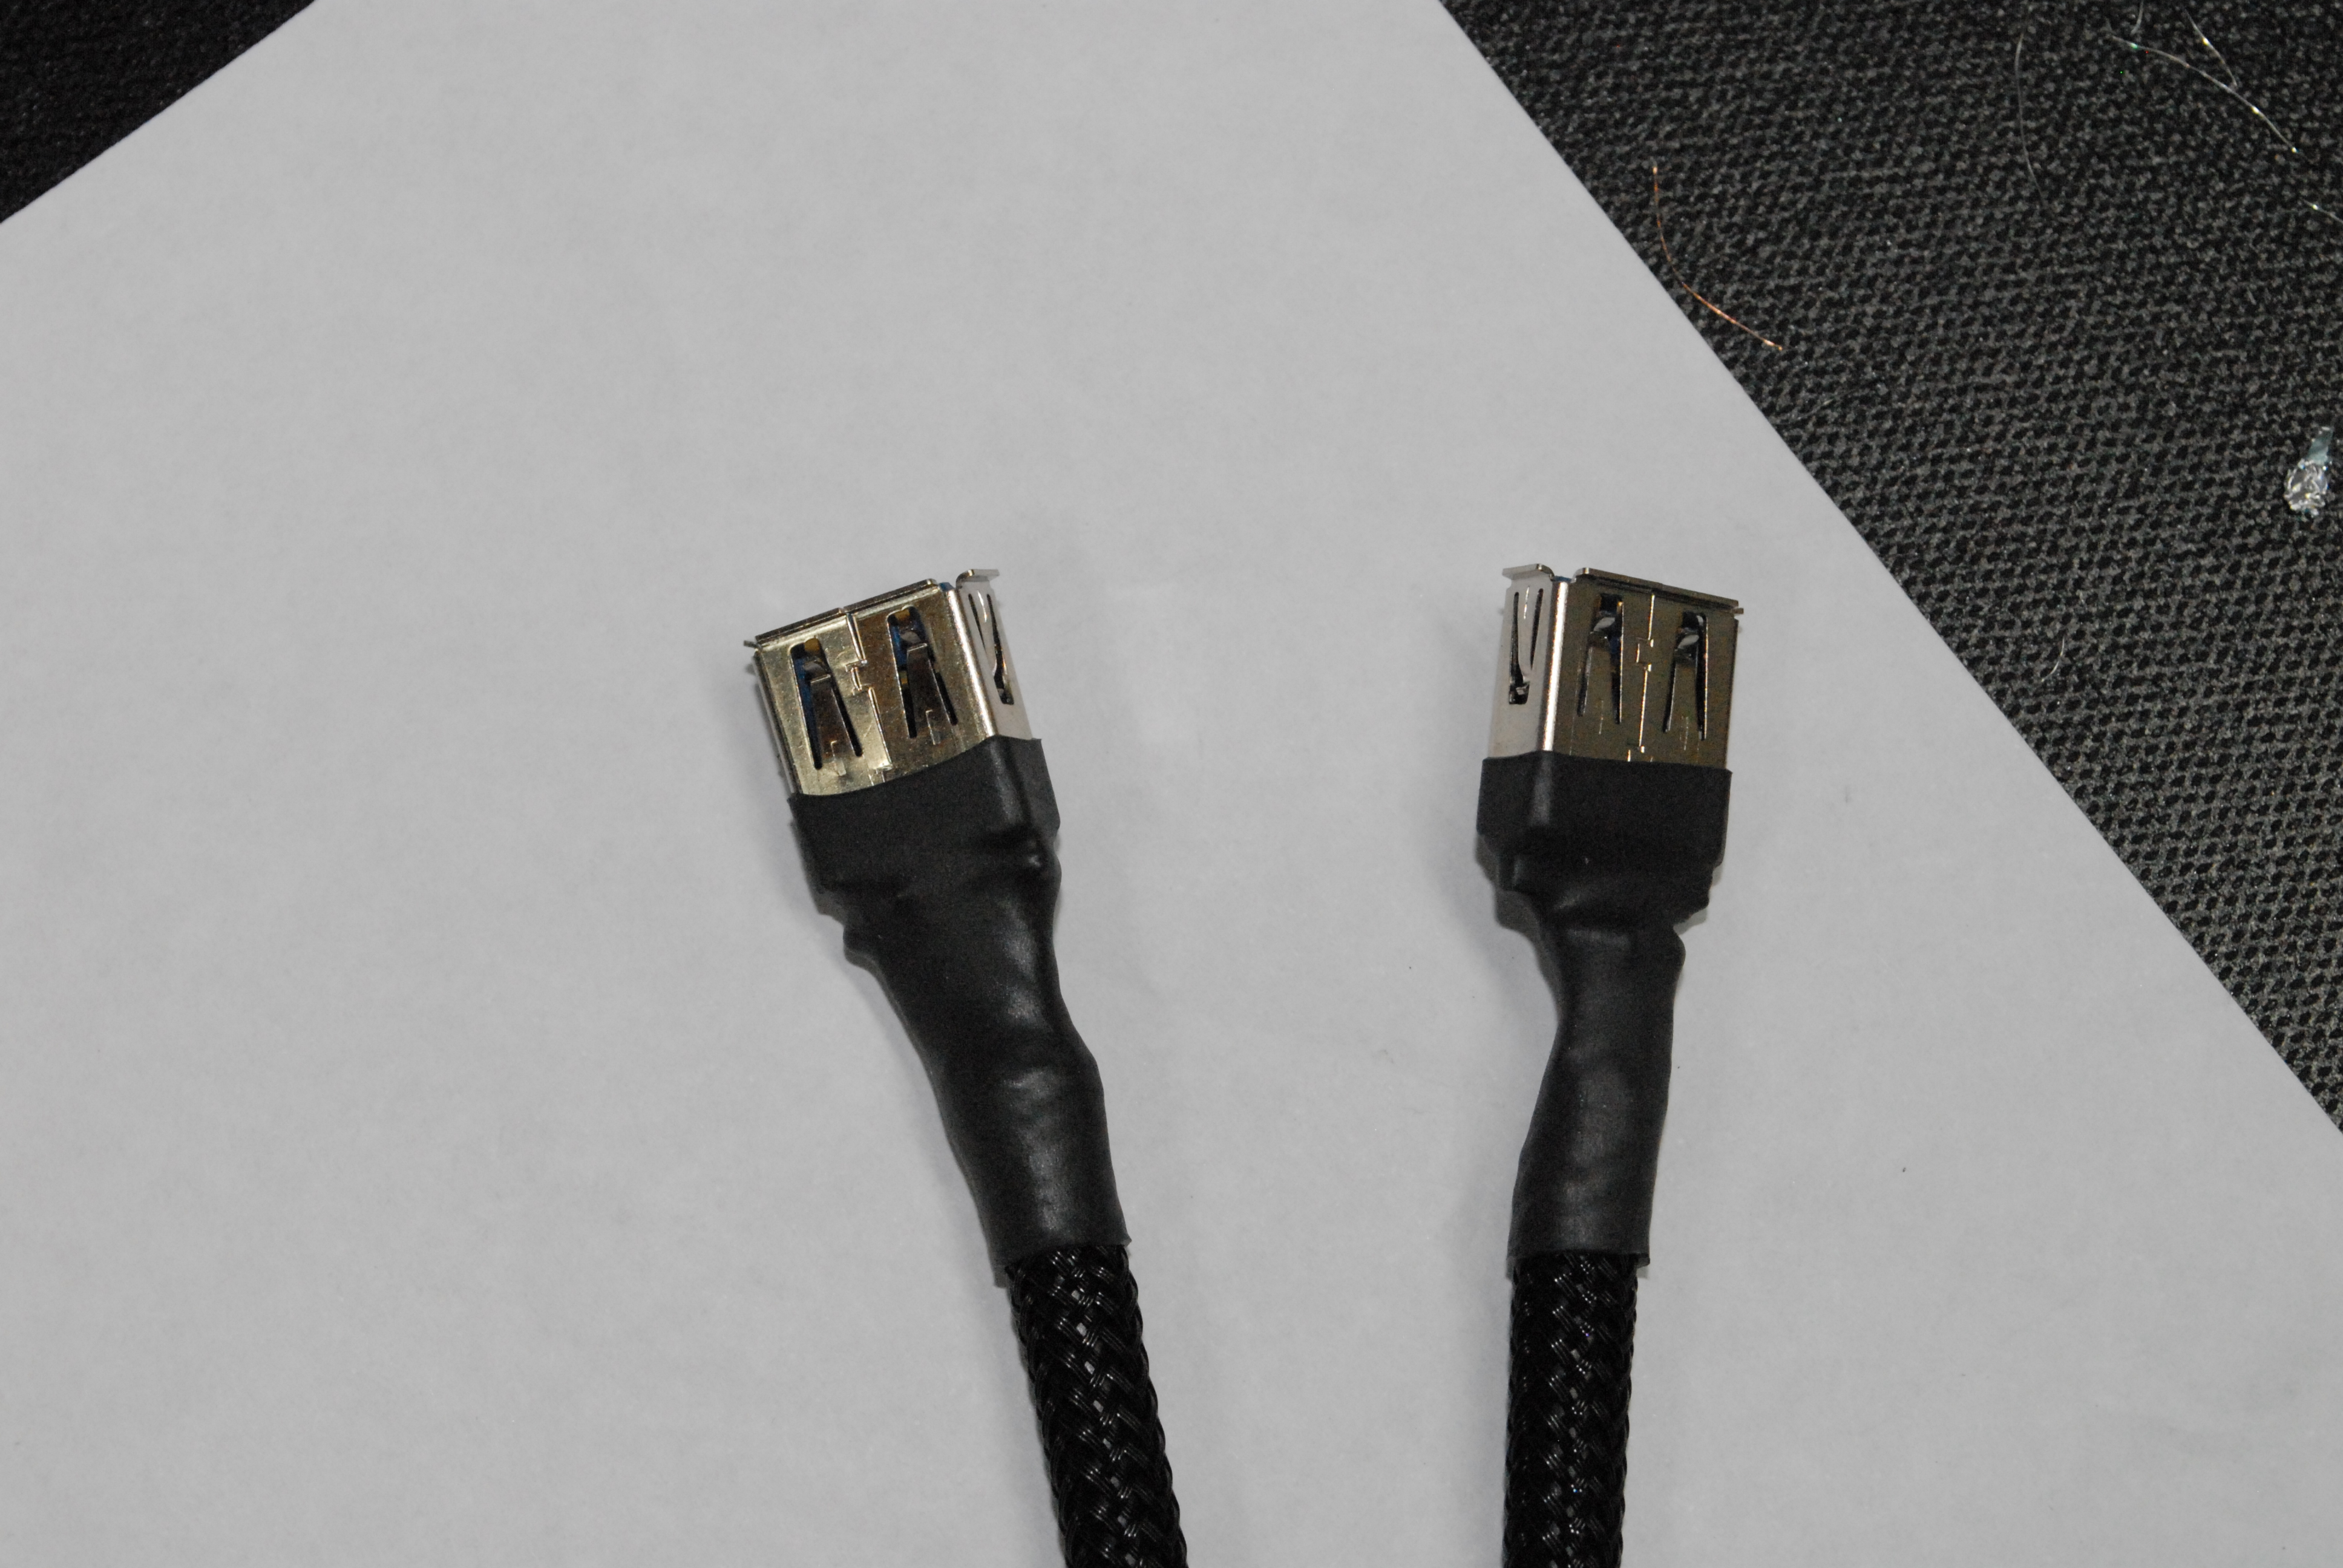 Guide] How to Solder Your Own USB2.0/3.0 Cables - Overclock.net - An ...